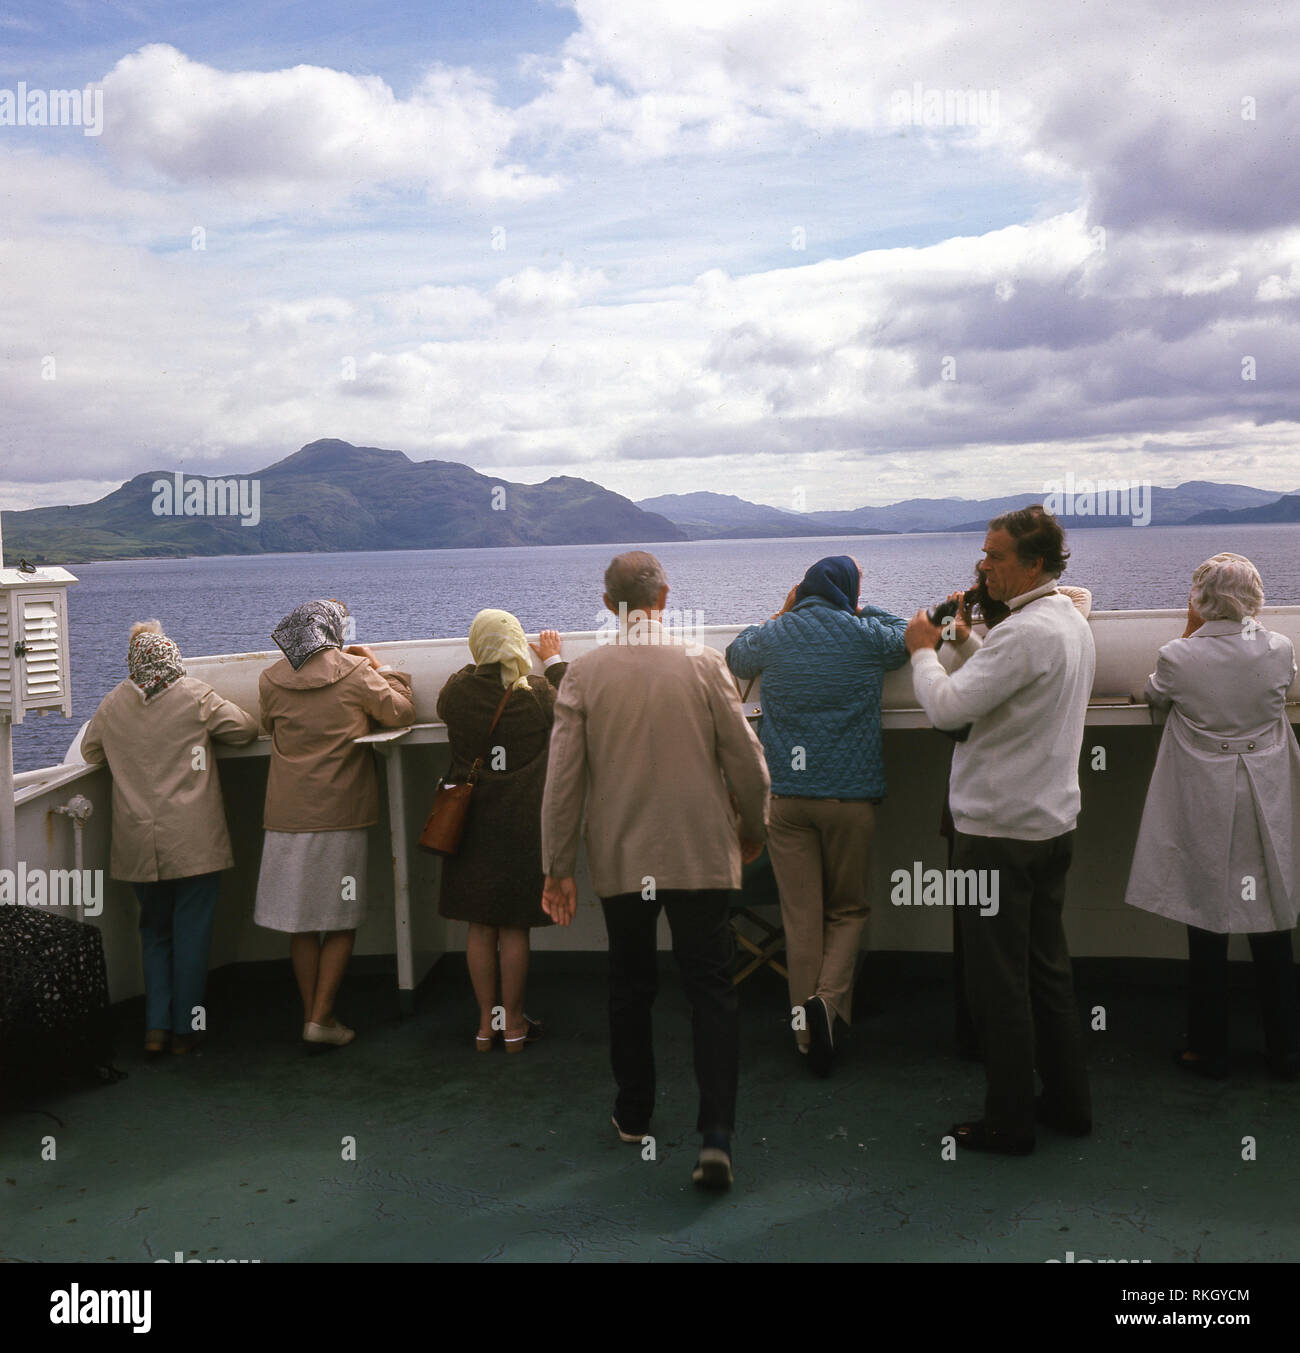 1960s, daytime and passengers on a ferry looking out at the Sound of Mull, a sound ( an ocean channel) between the Inner Hebridean Island of Mull and Scotland. The sound is part of of the Atlantic Ocean on the West Coast of Scotland, - Stock Image